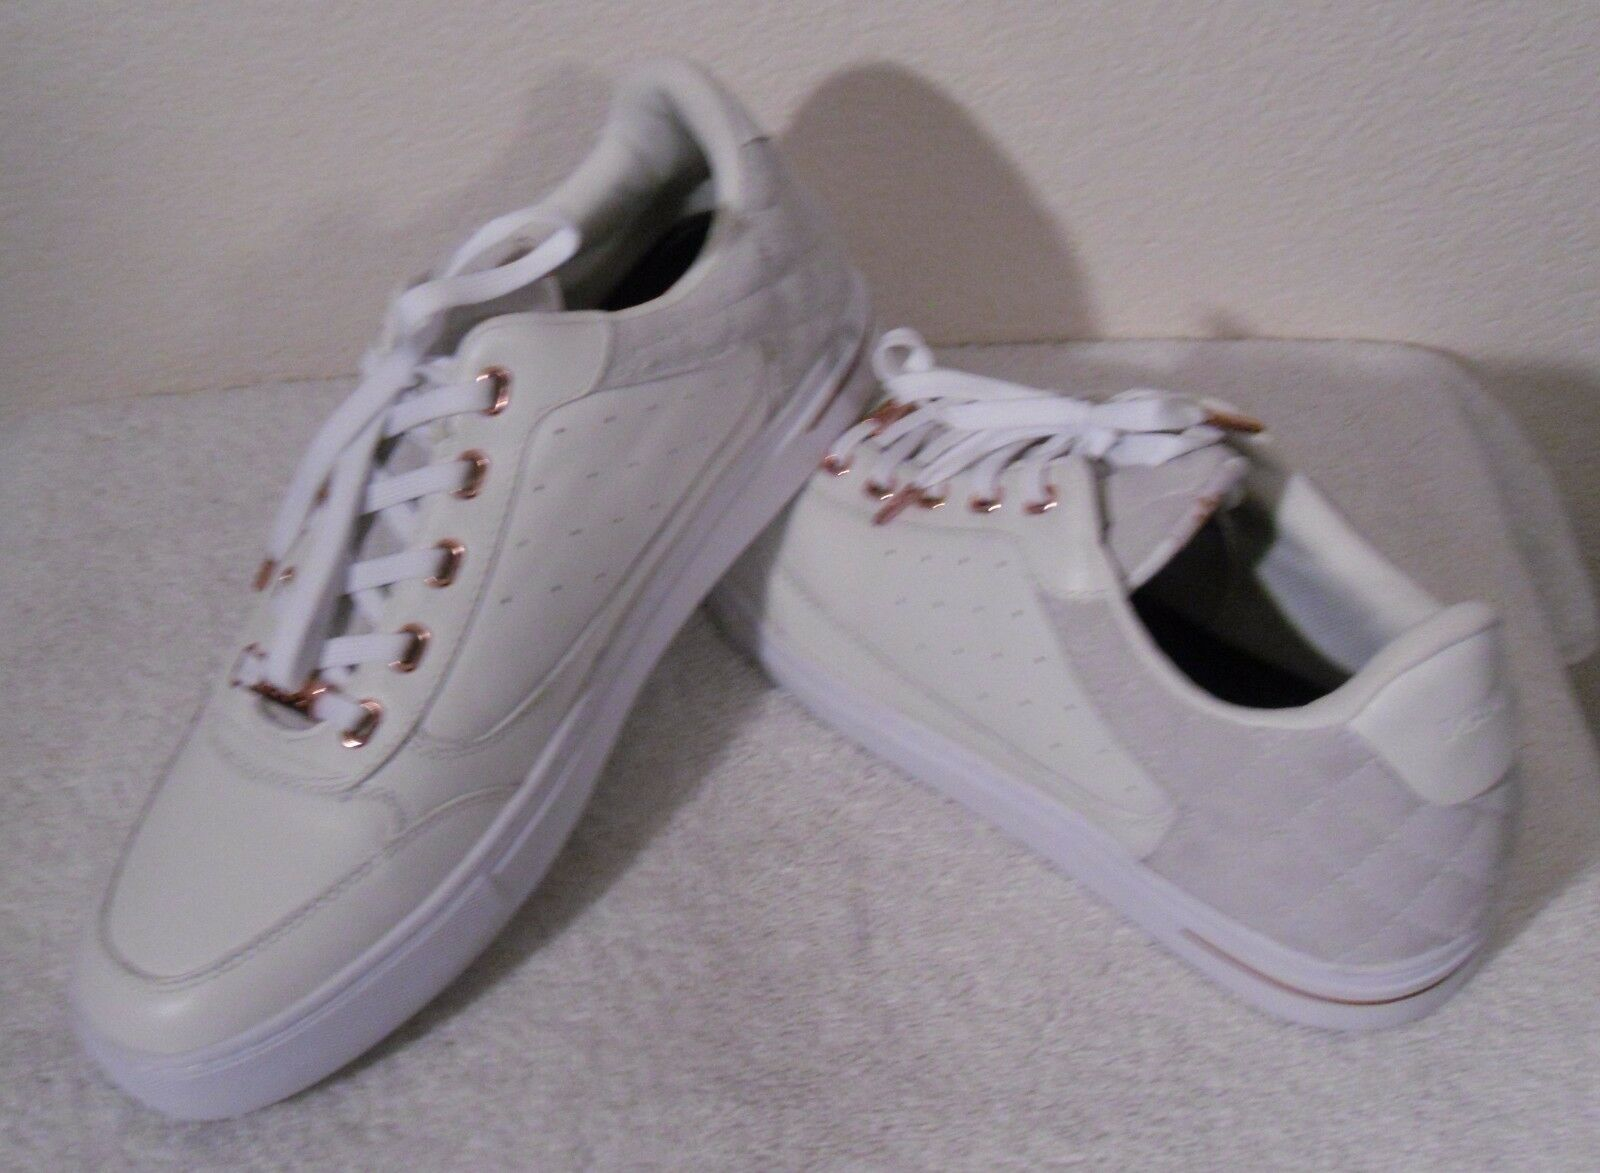 NEW Mayven X Madden Shoes Venturre Uomo Fashion  Shoes Madden 12 White MSRP 150 046926